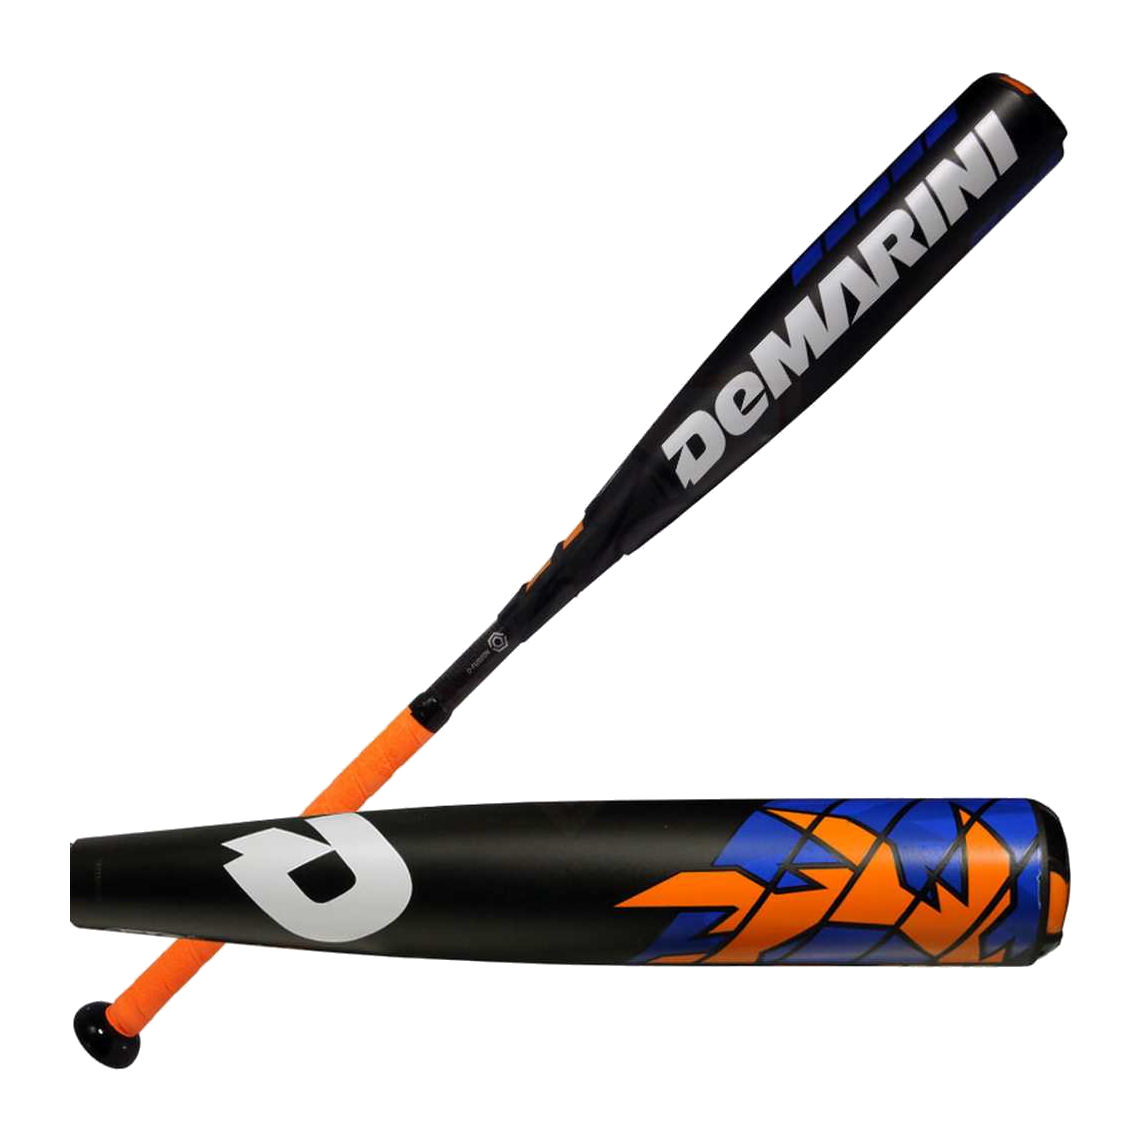 DeMarini VooDoo Raw (-10) Senior Baseball Bat WTDXVDZ-16